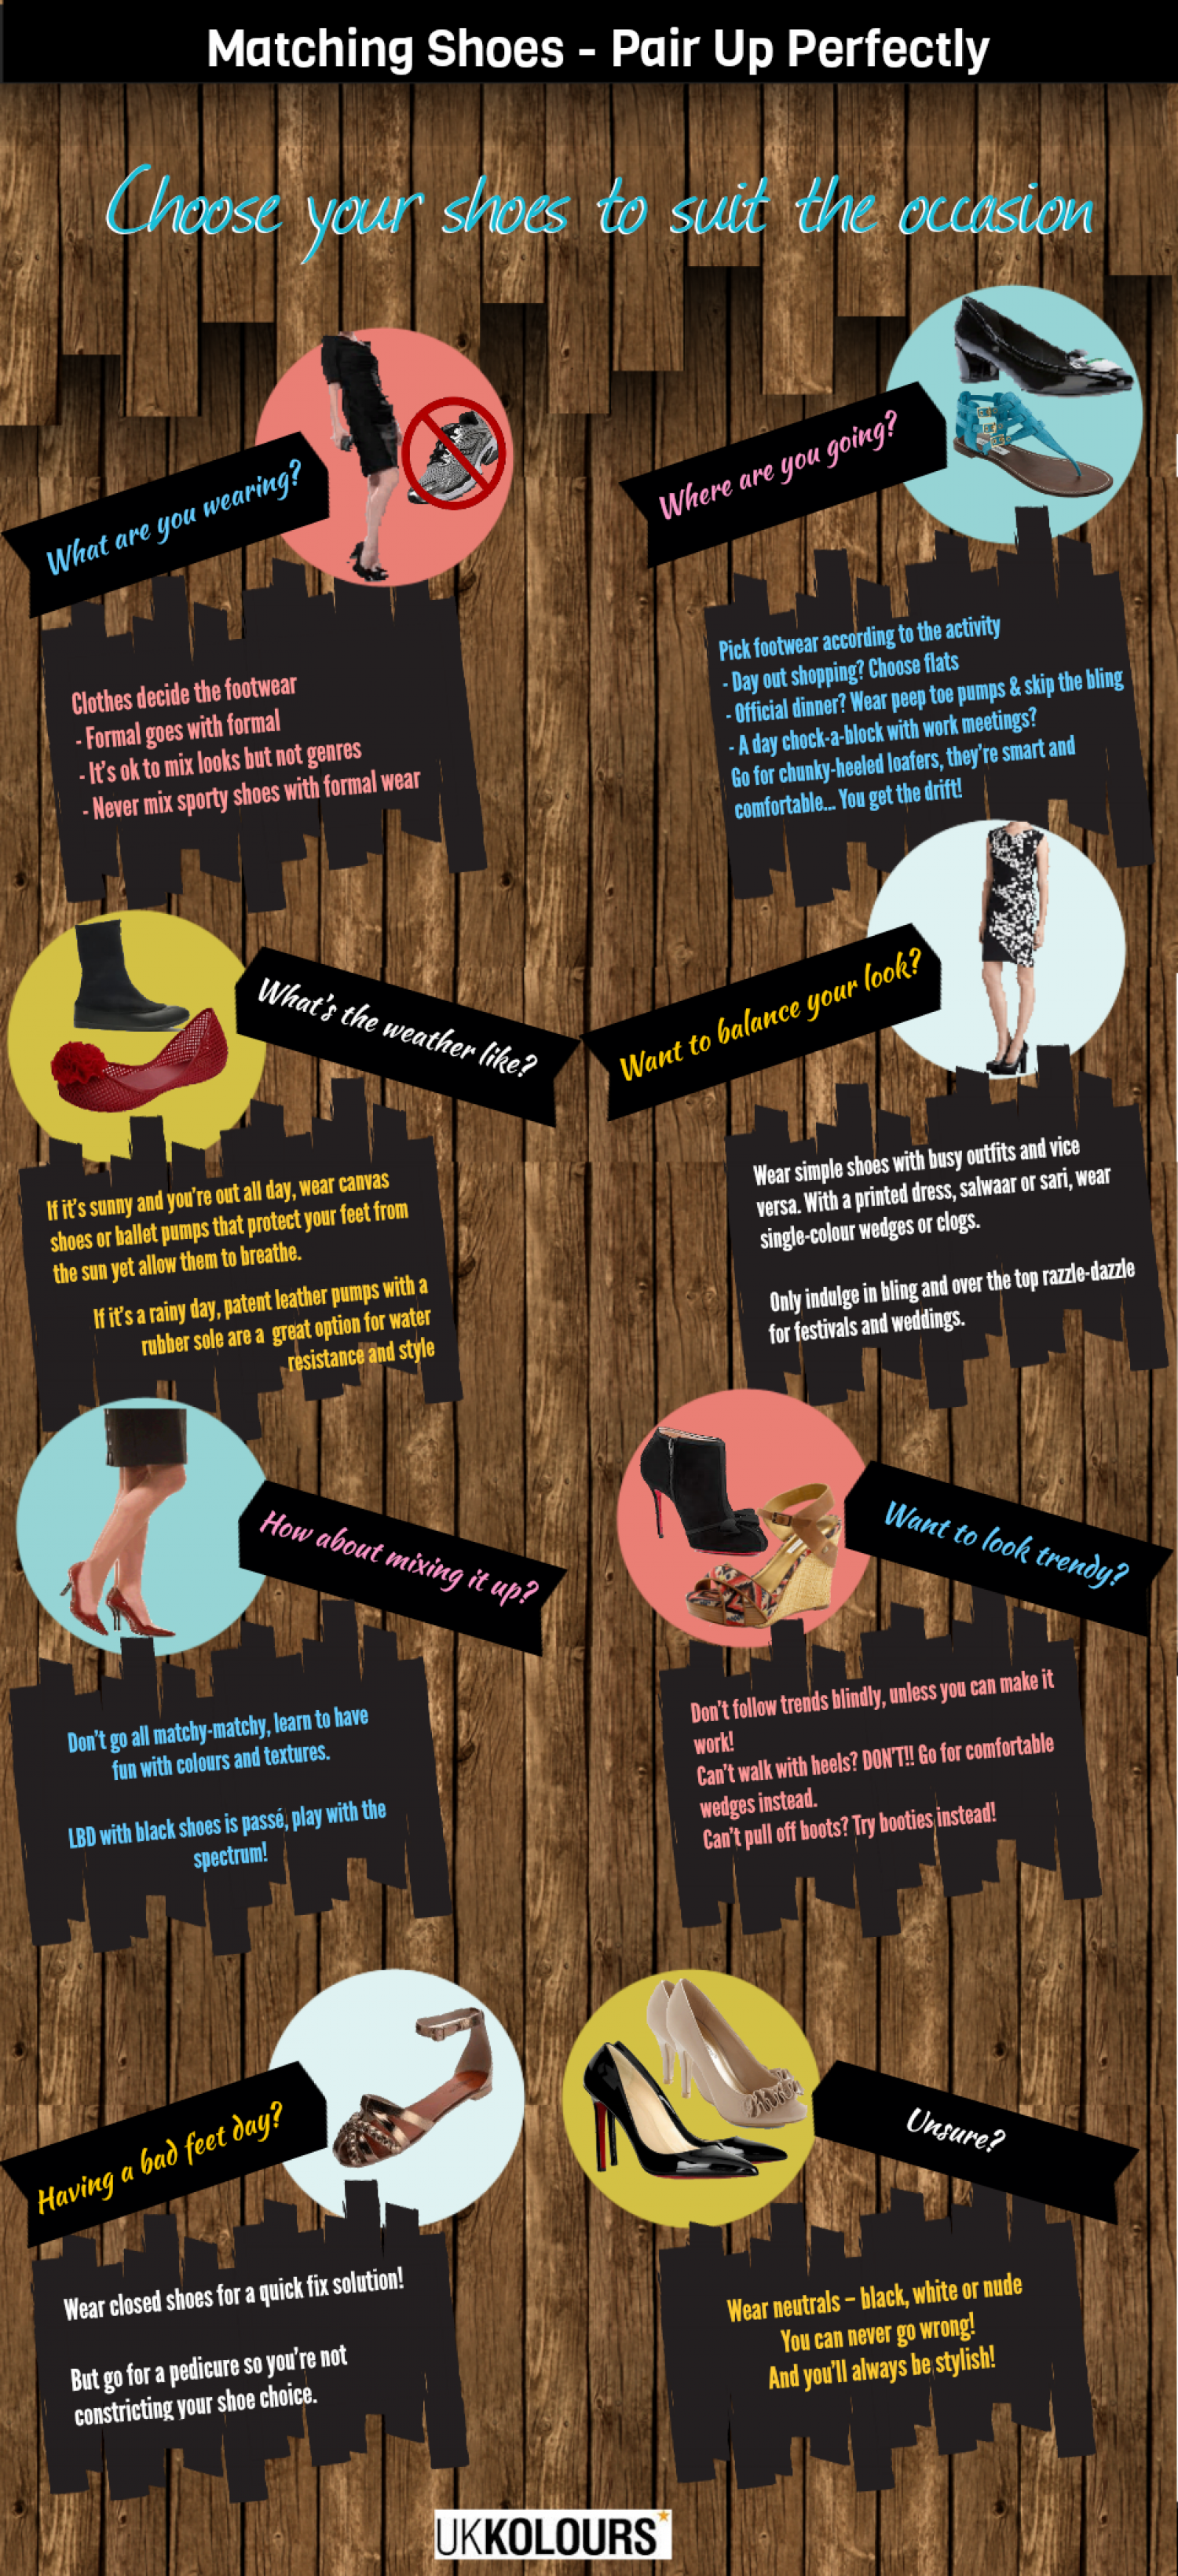 Matching Shoes - Pair Up Perfectly Infographic